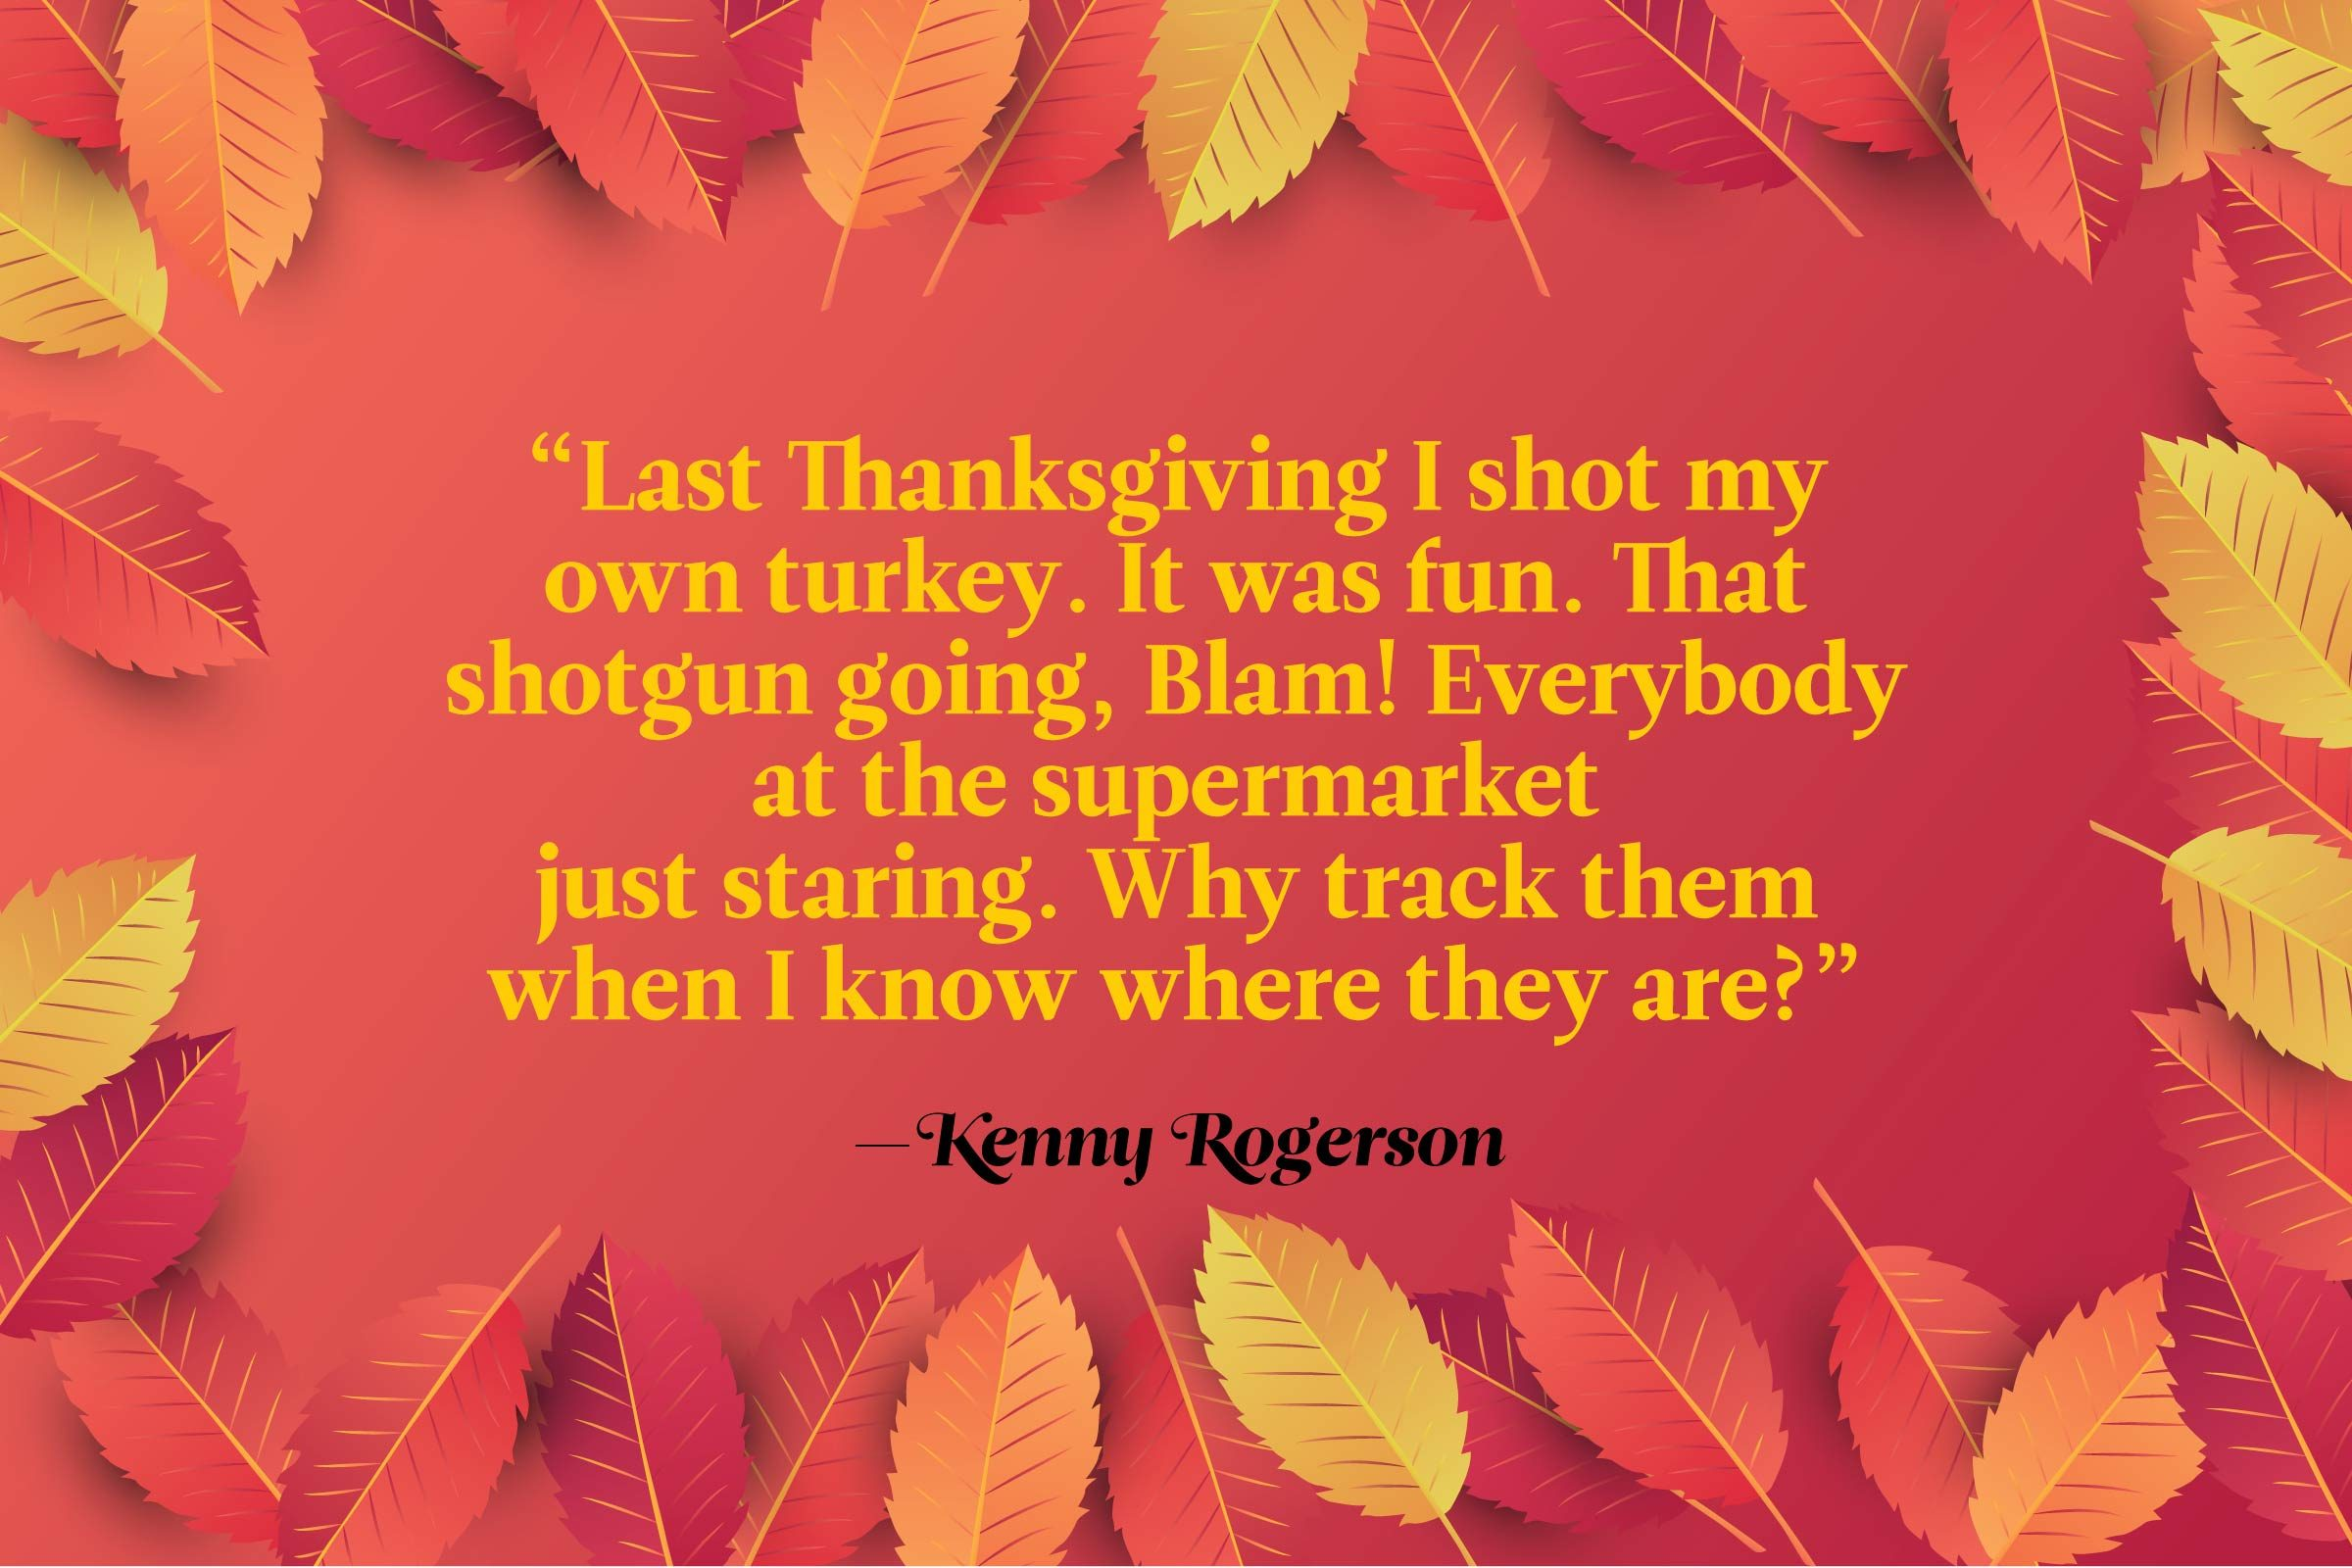 Funny Thanksgiving Quotes - Kenny Rogerson